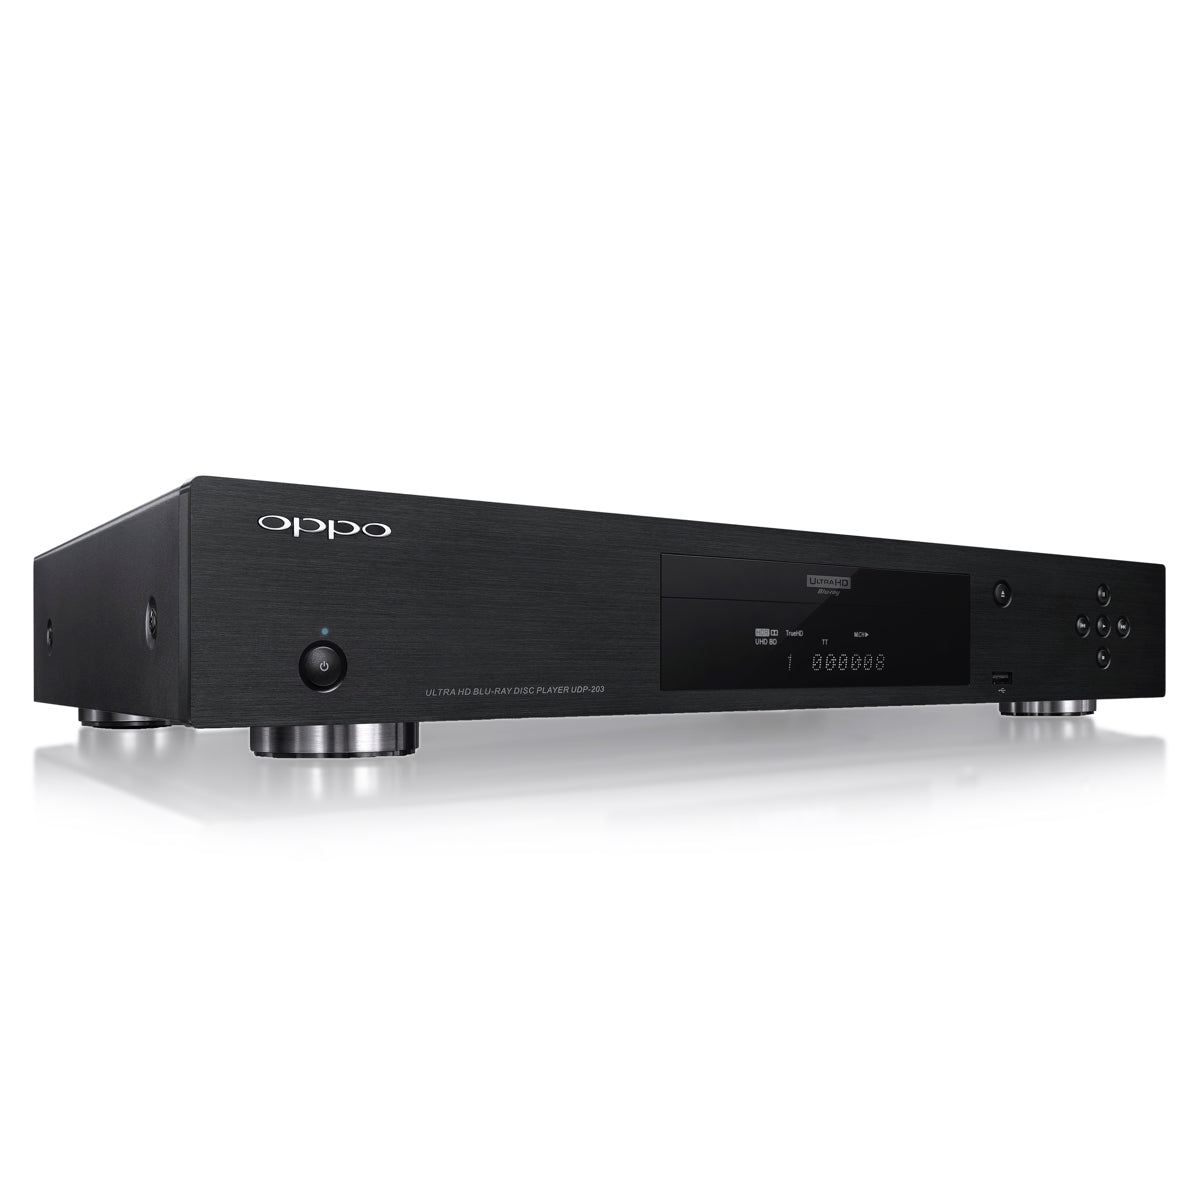 Oppo UDP 203 4k Ultra HD Blu-ray Disc Player, Oppo, Digital Players & Streamers - AVStore.in